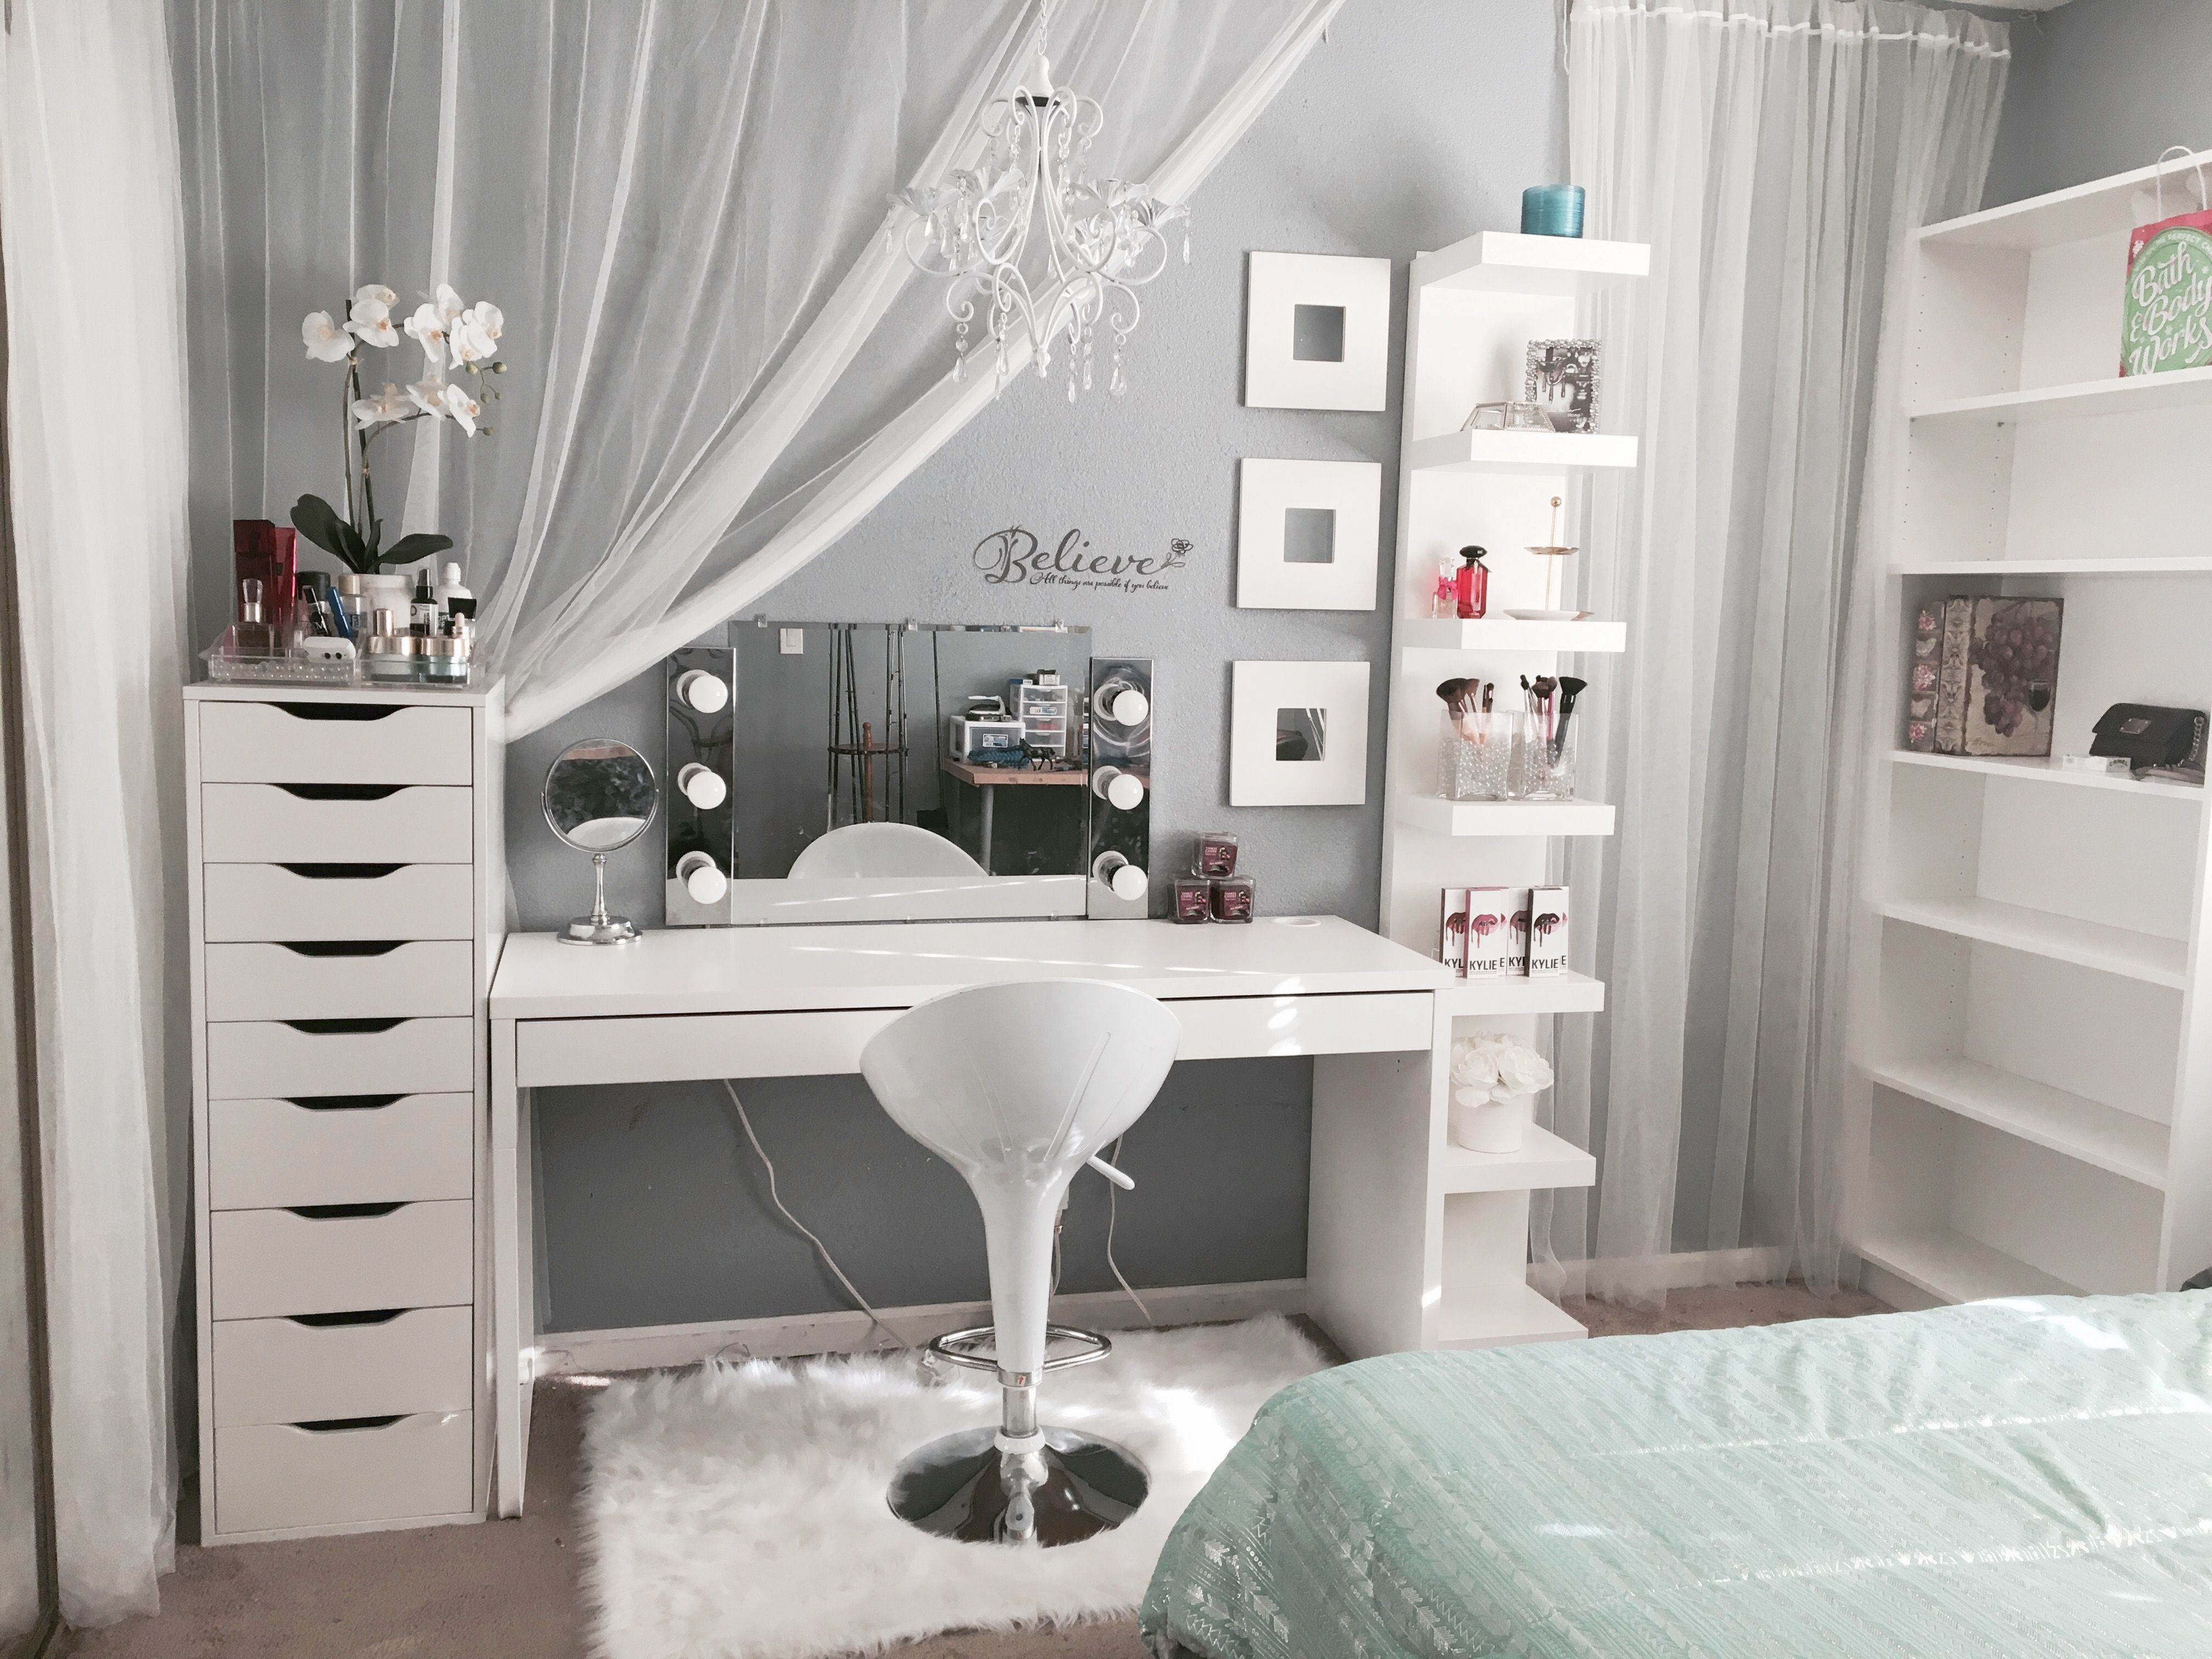 Makeup Forever Owned By When Makeup Vanity Table With Lighted Mirror Ikea Other Makeup Vanity Set Clearance Makeup Loo Bedroom Vanity Bedroom Decor Room Decor